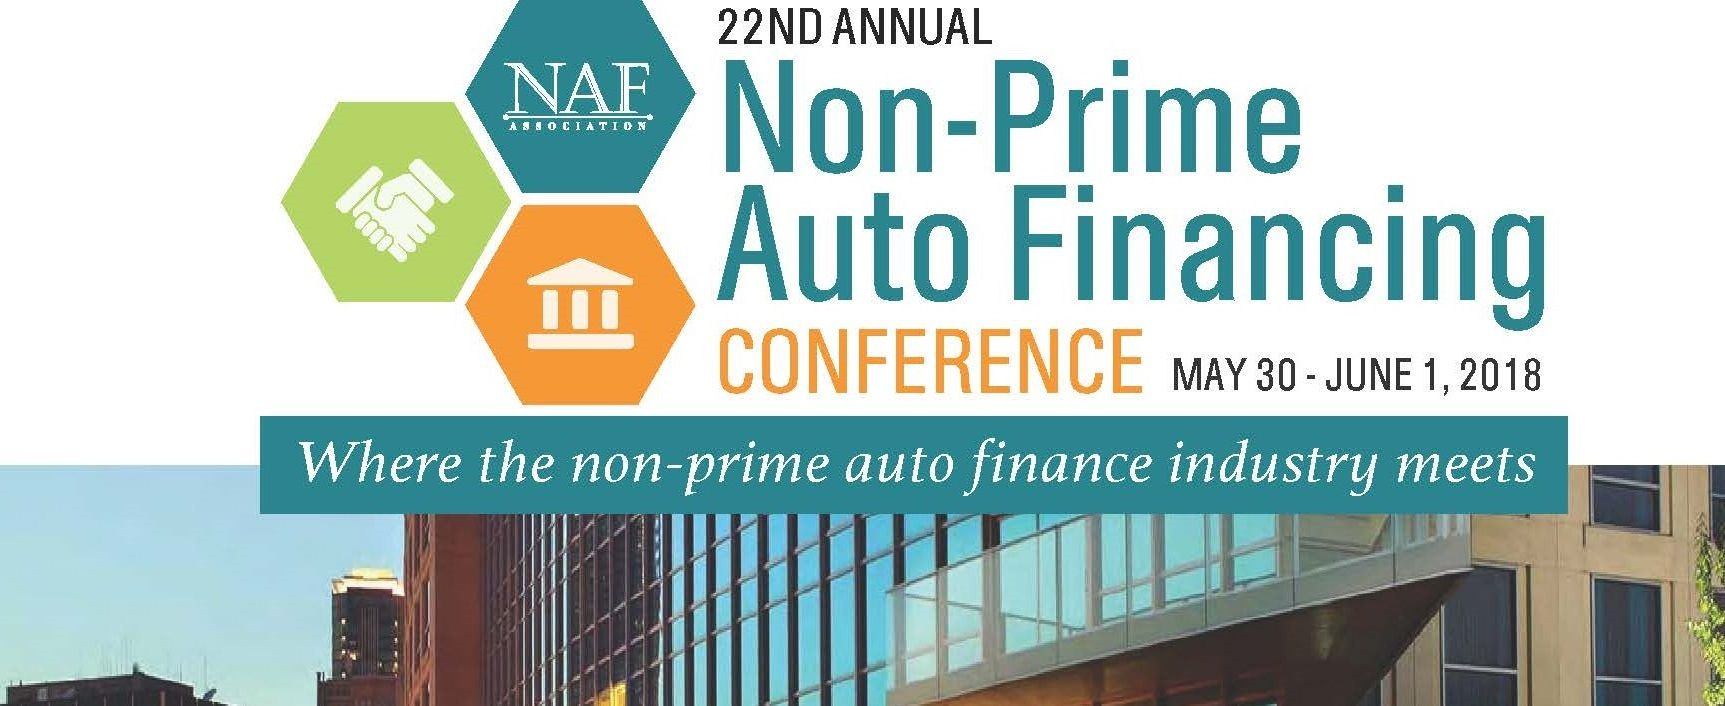 Please join Thrift & McLemore at the National Automotive